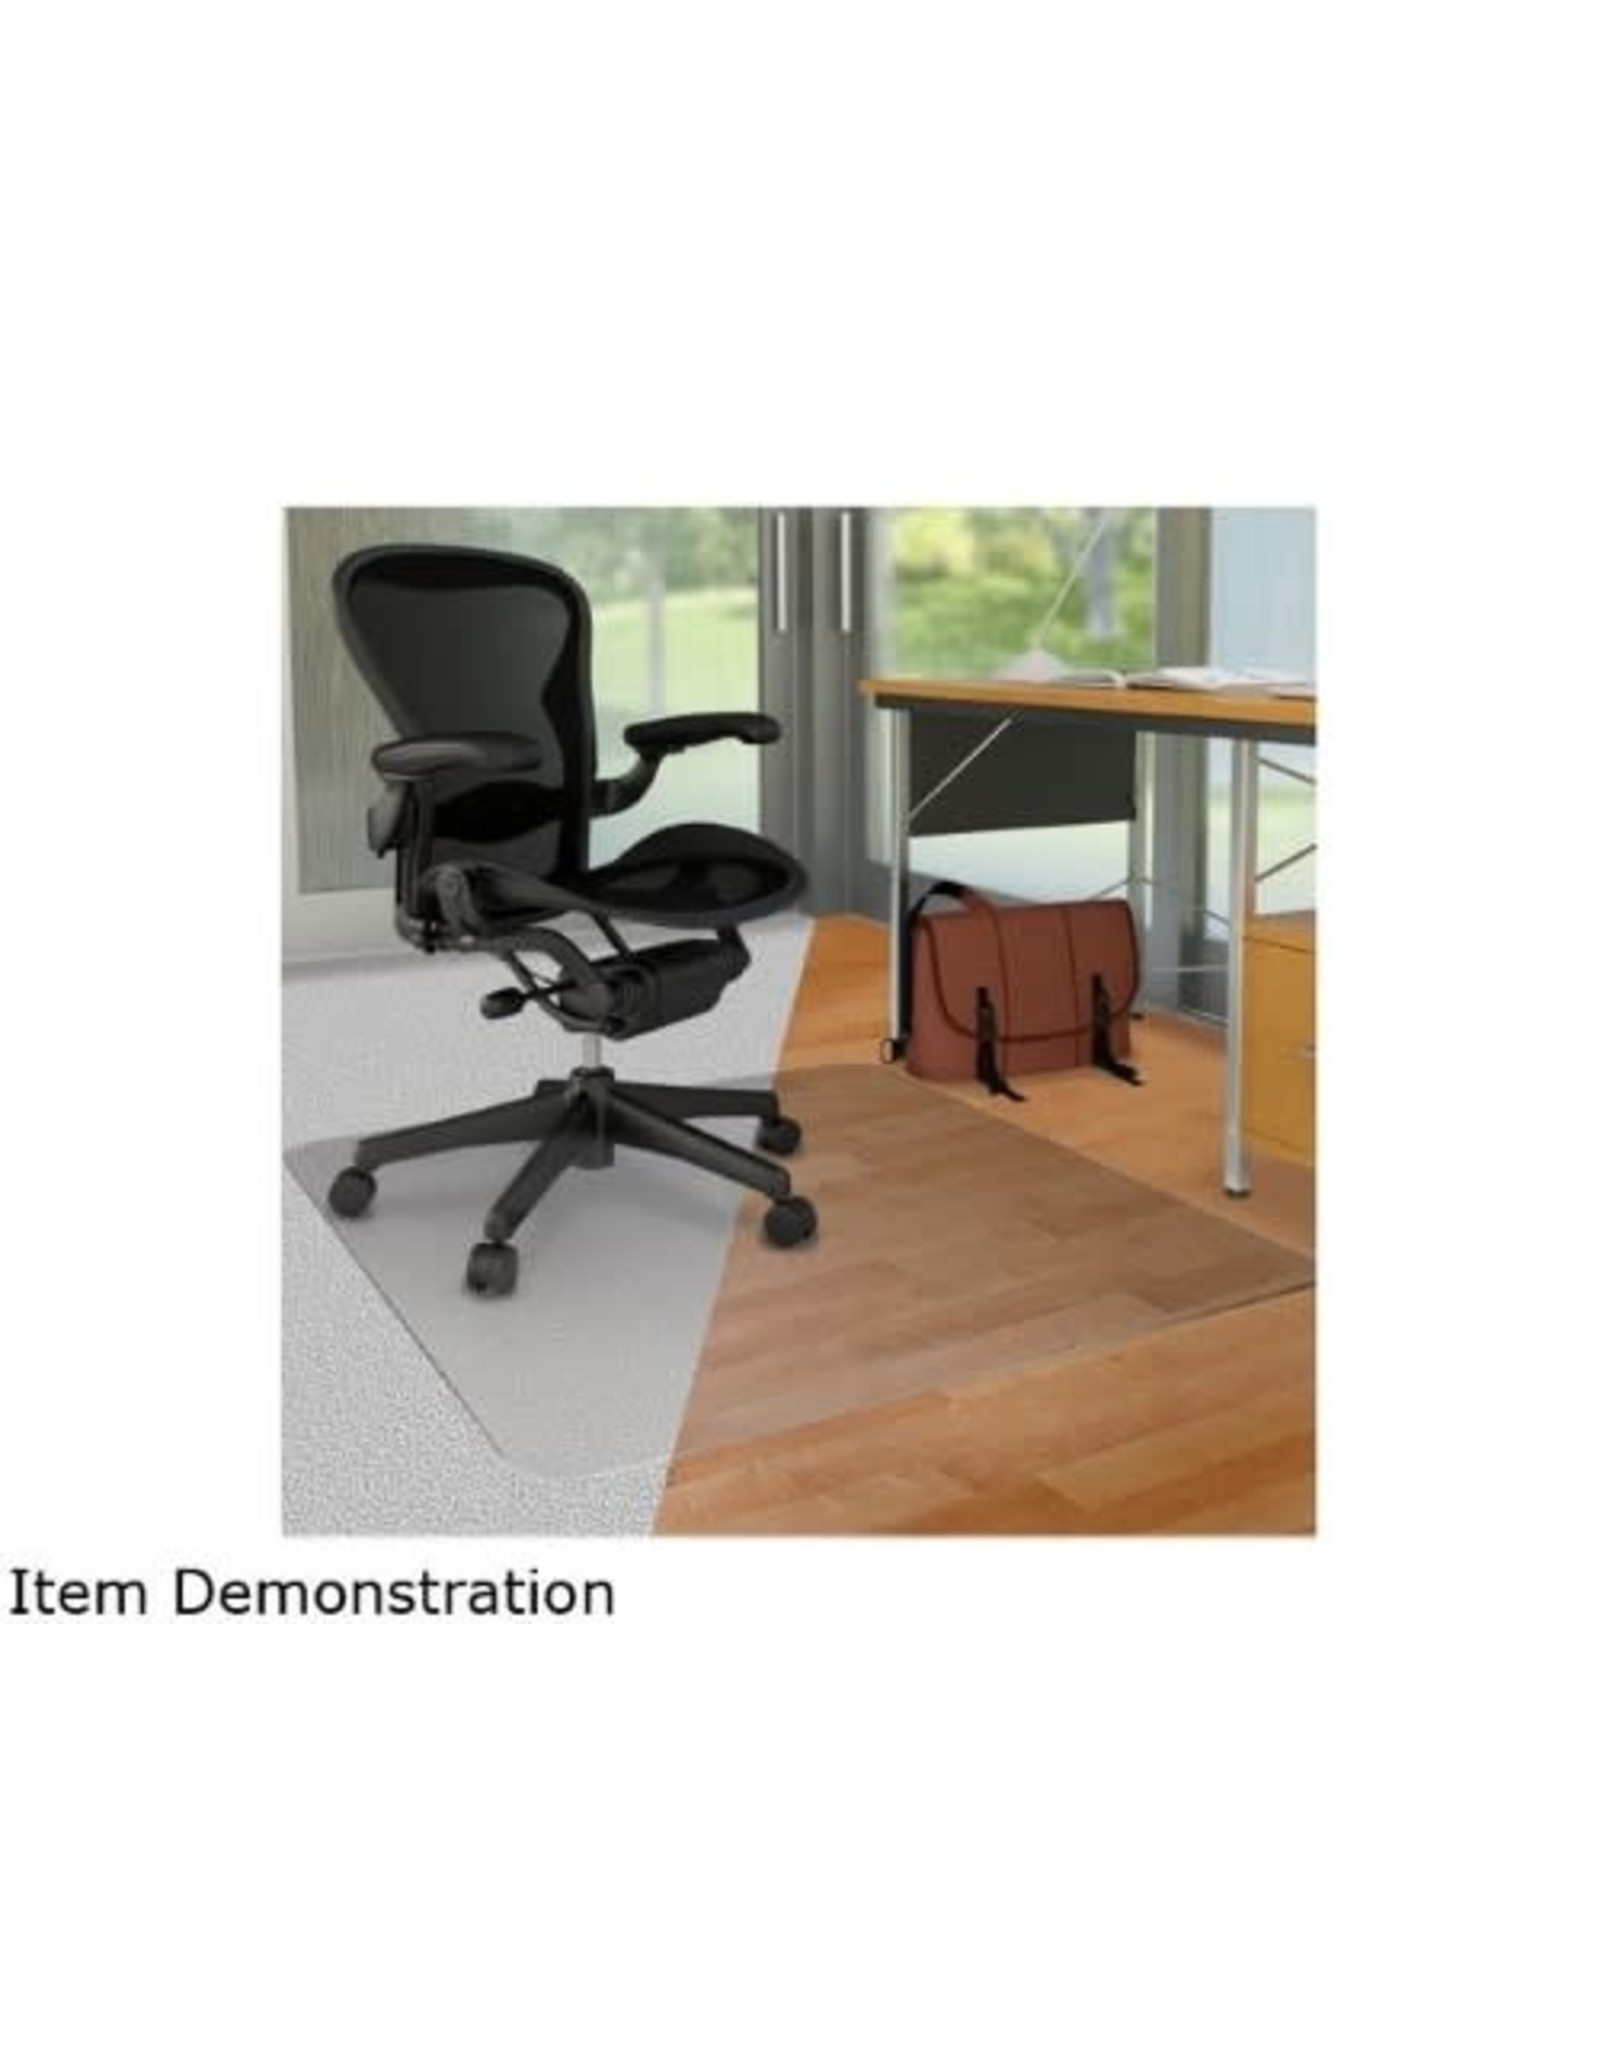 Deflecto CHAIRMAT-DUOMAT, CARPET/HARD FLOOR 45X53 WITH 25X12 LIP